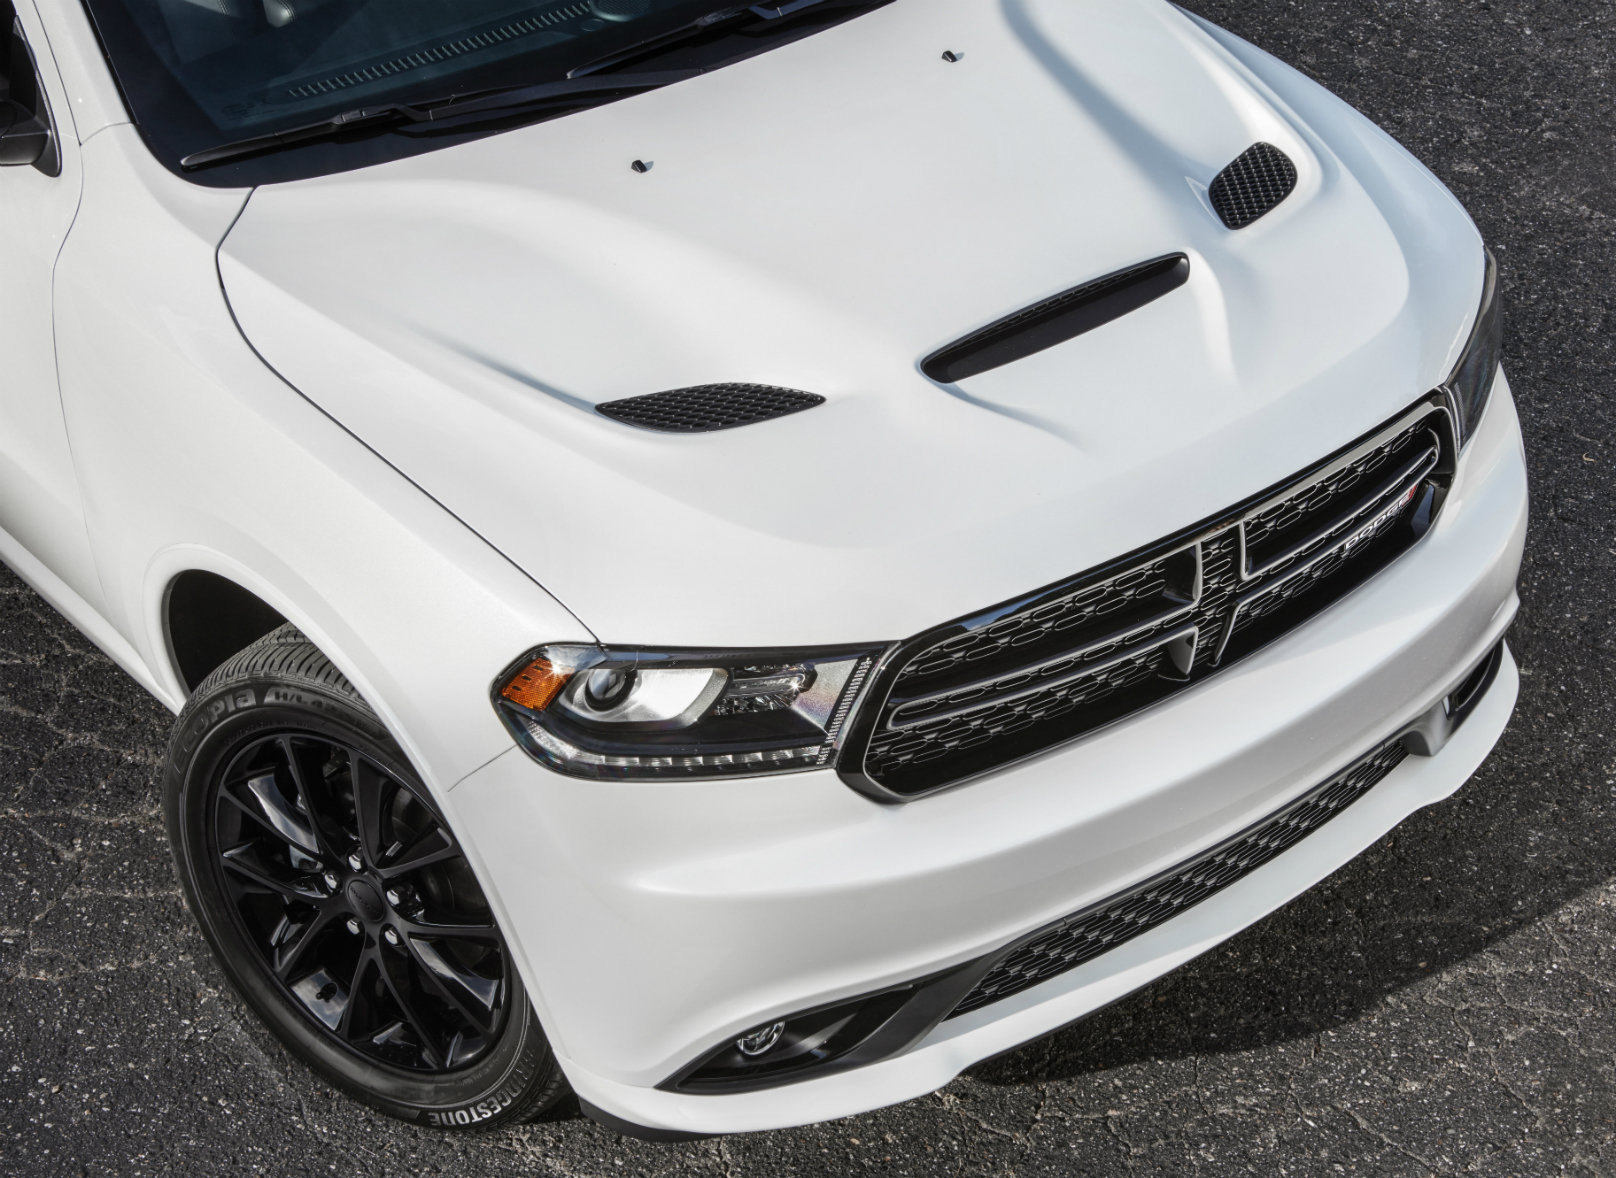 Dodge Durango SRT pricing